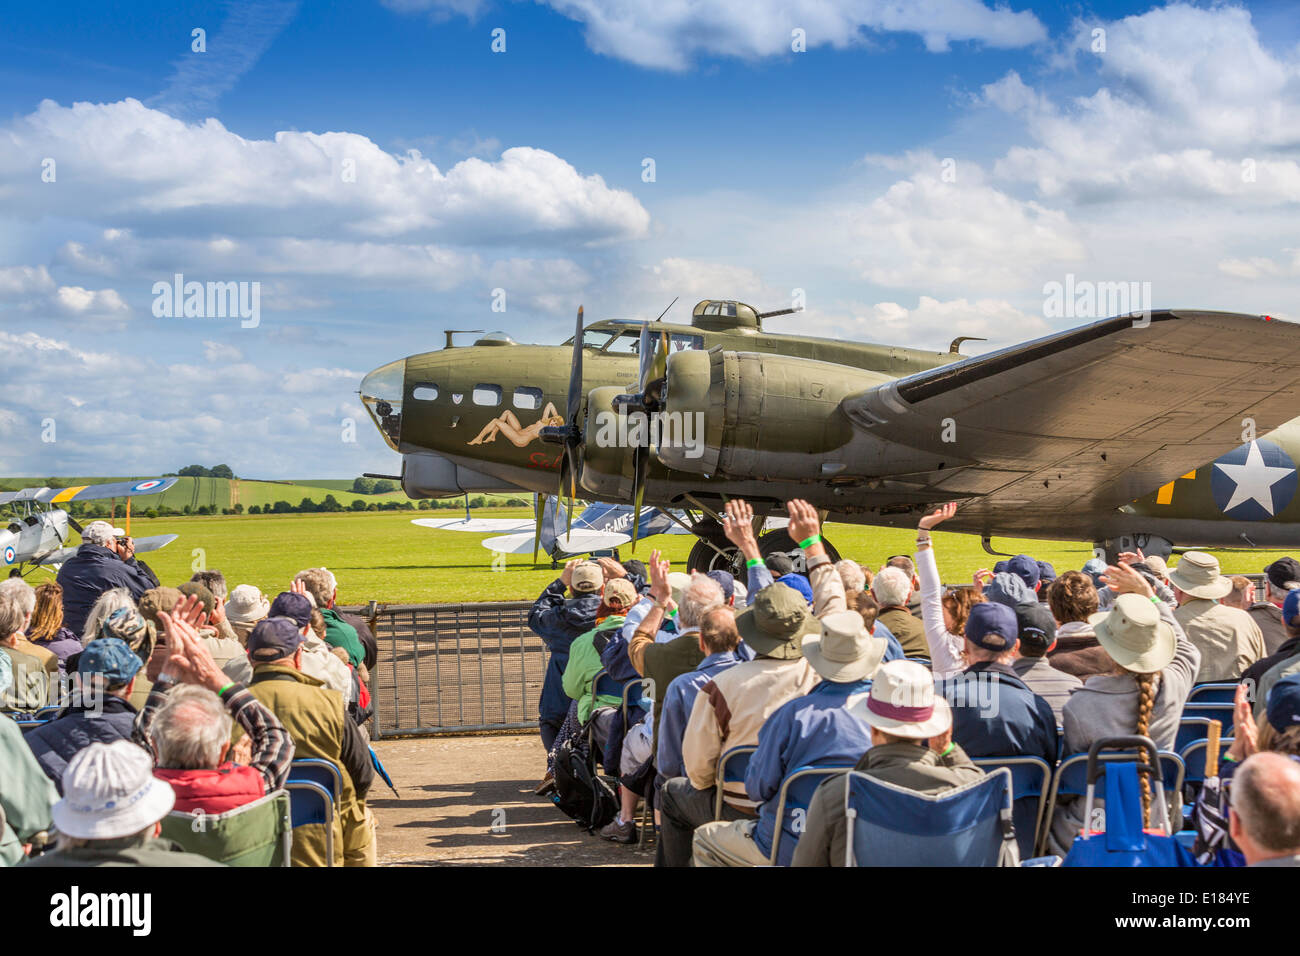 Sally B, a Boeing B17 Flying Fortress, taxi past fans and spectators at a Duxford airshow, Duxford ,Cambridge, England UK - Stock Image